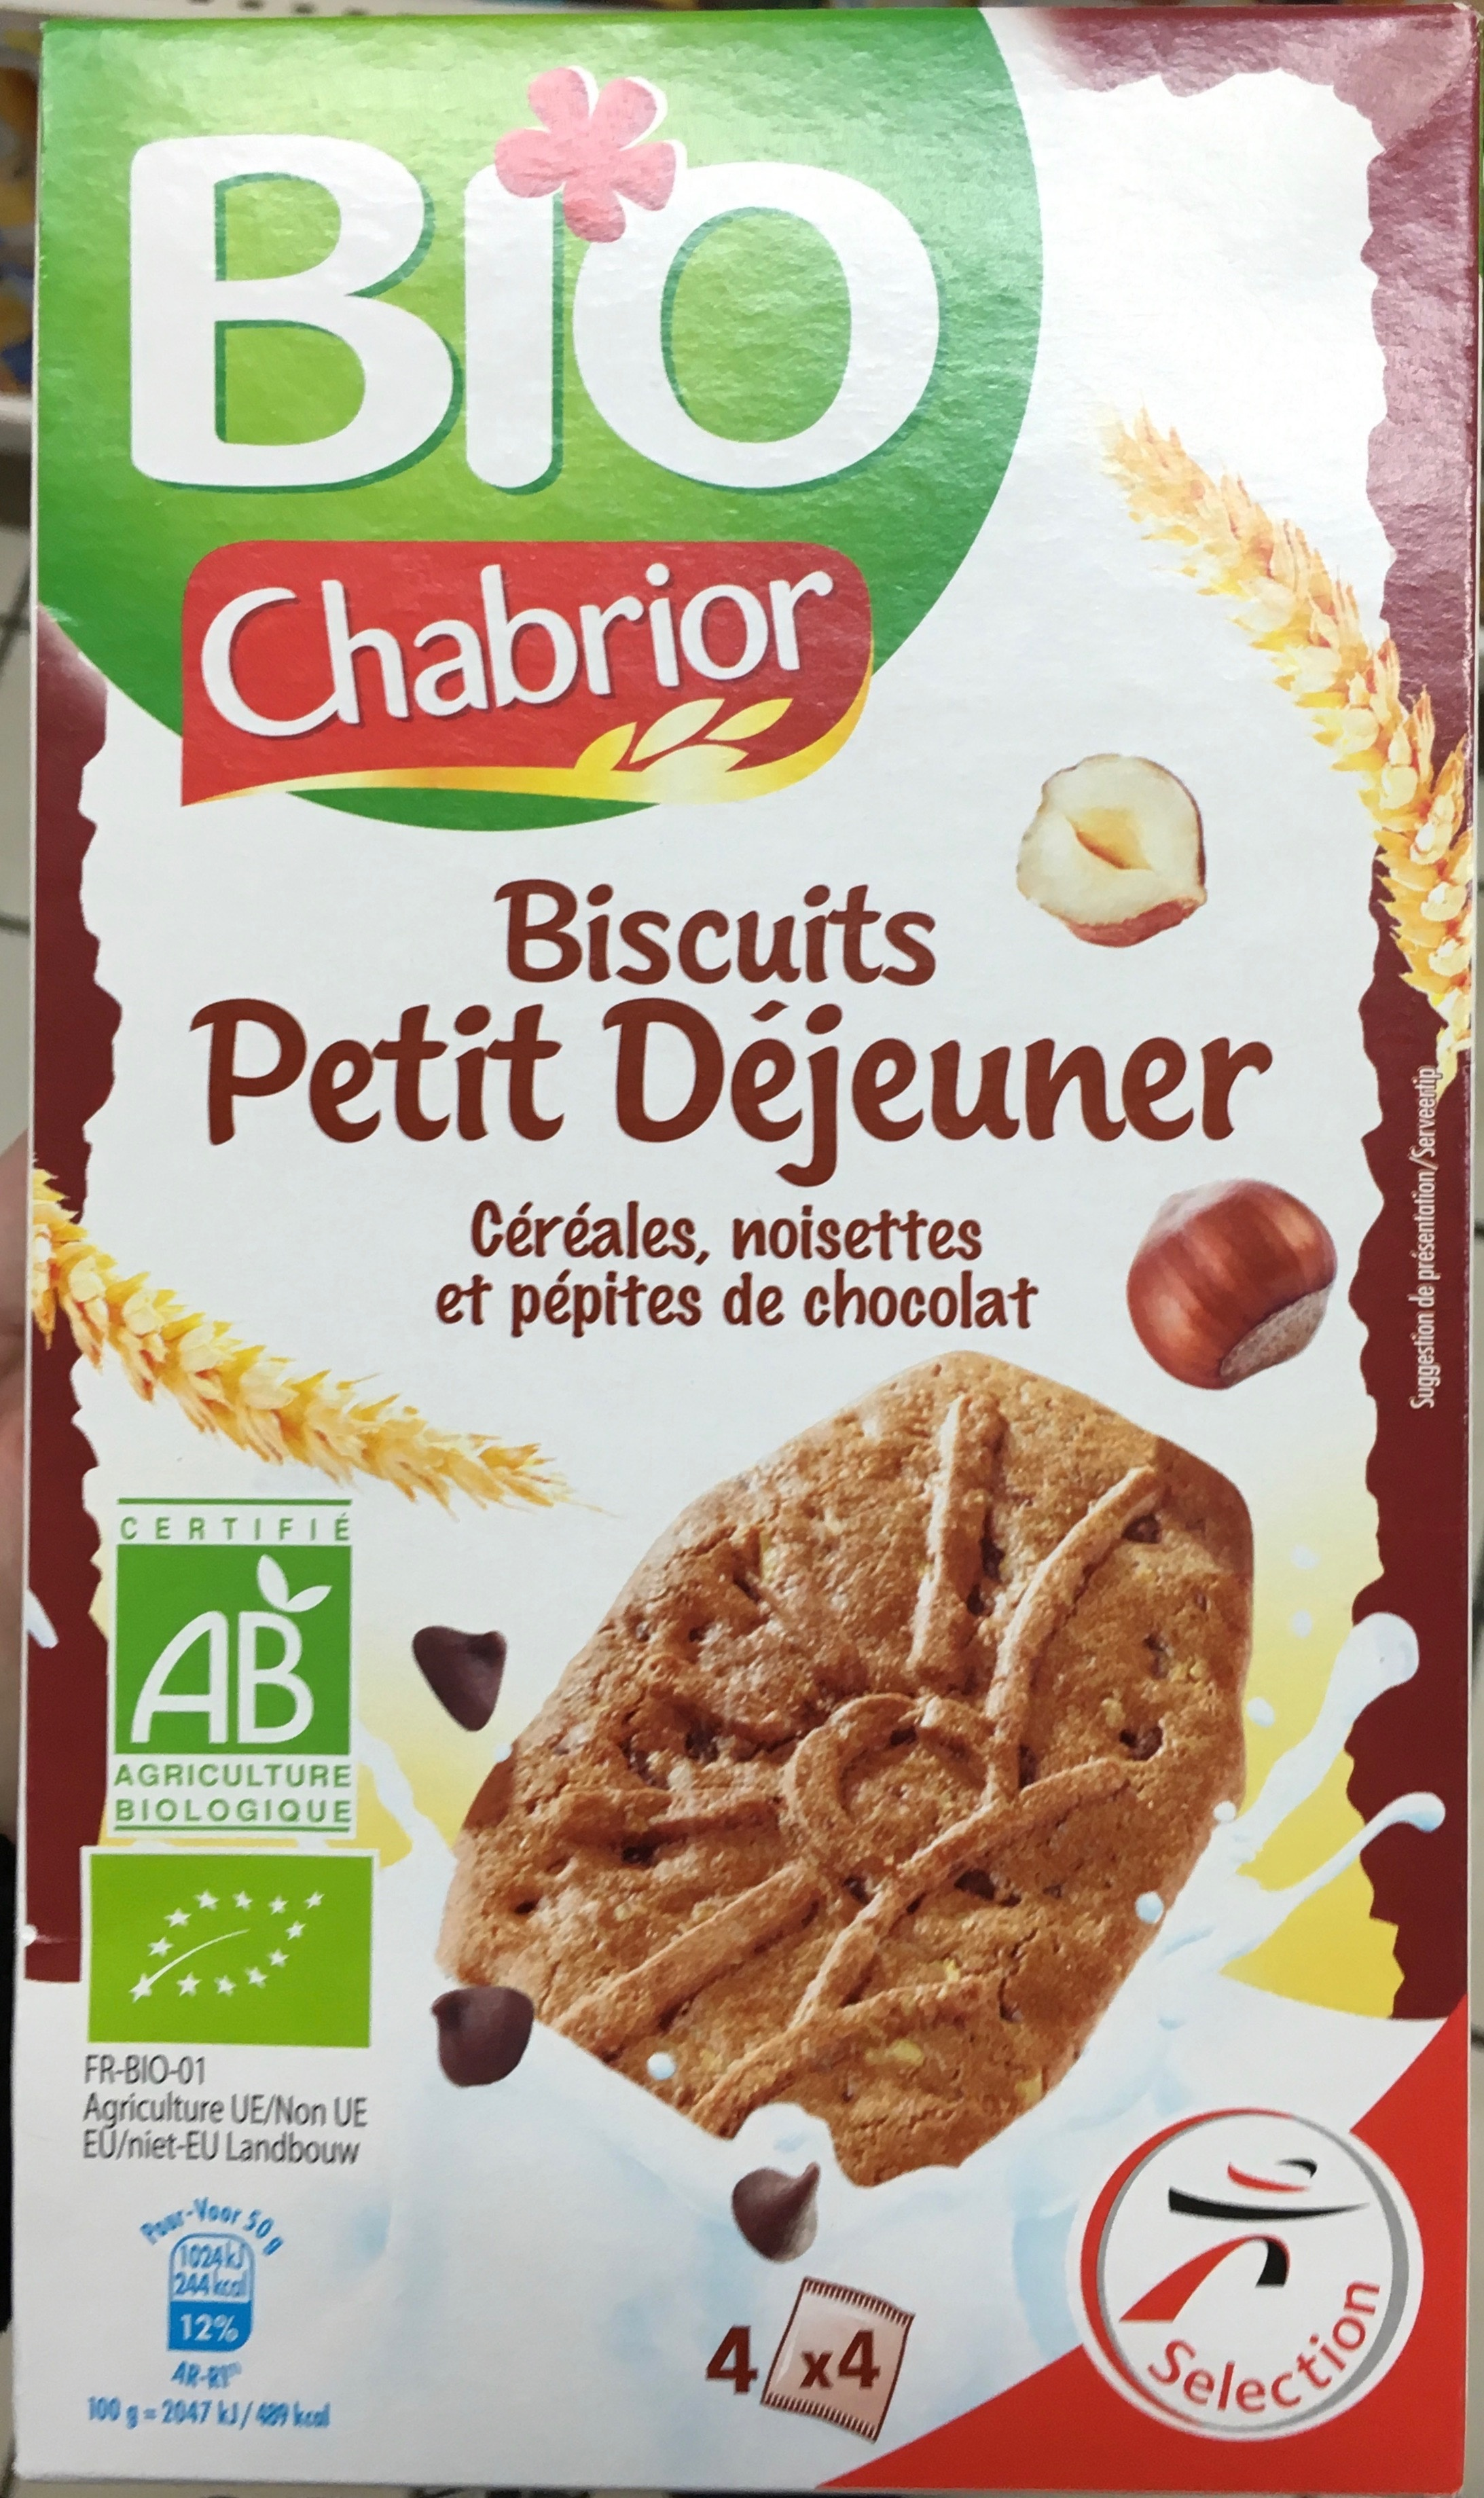 biscuits petit d jeuner c r ales noisettes et p pites de chocolat chabrior 200 g. Black Bedroom Furniture Sets. Home Design Ideas